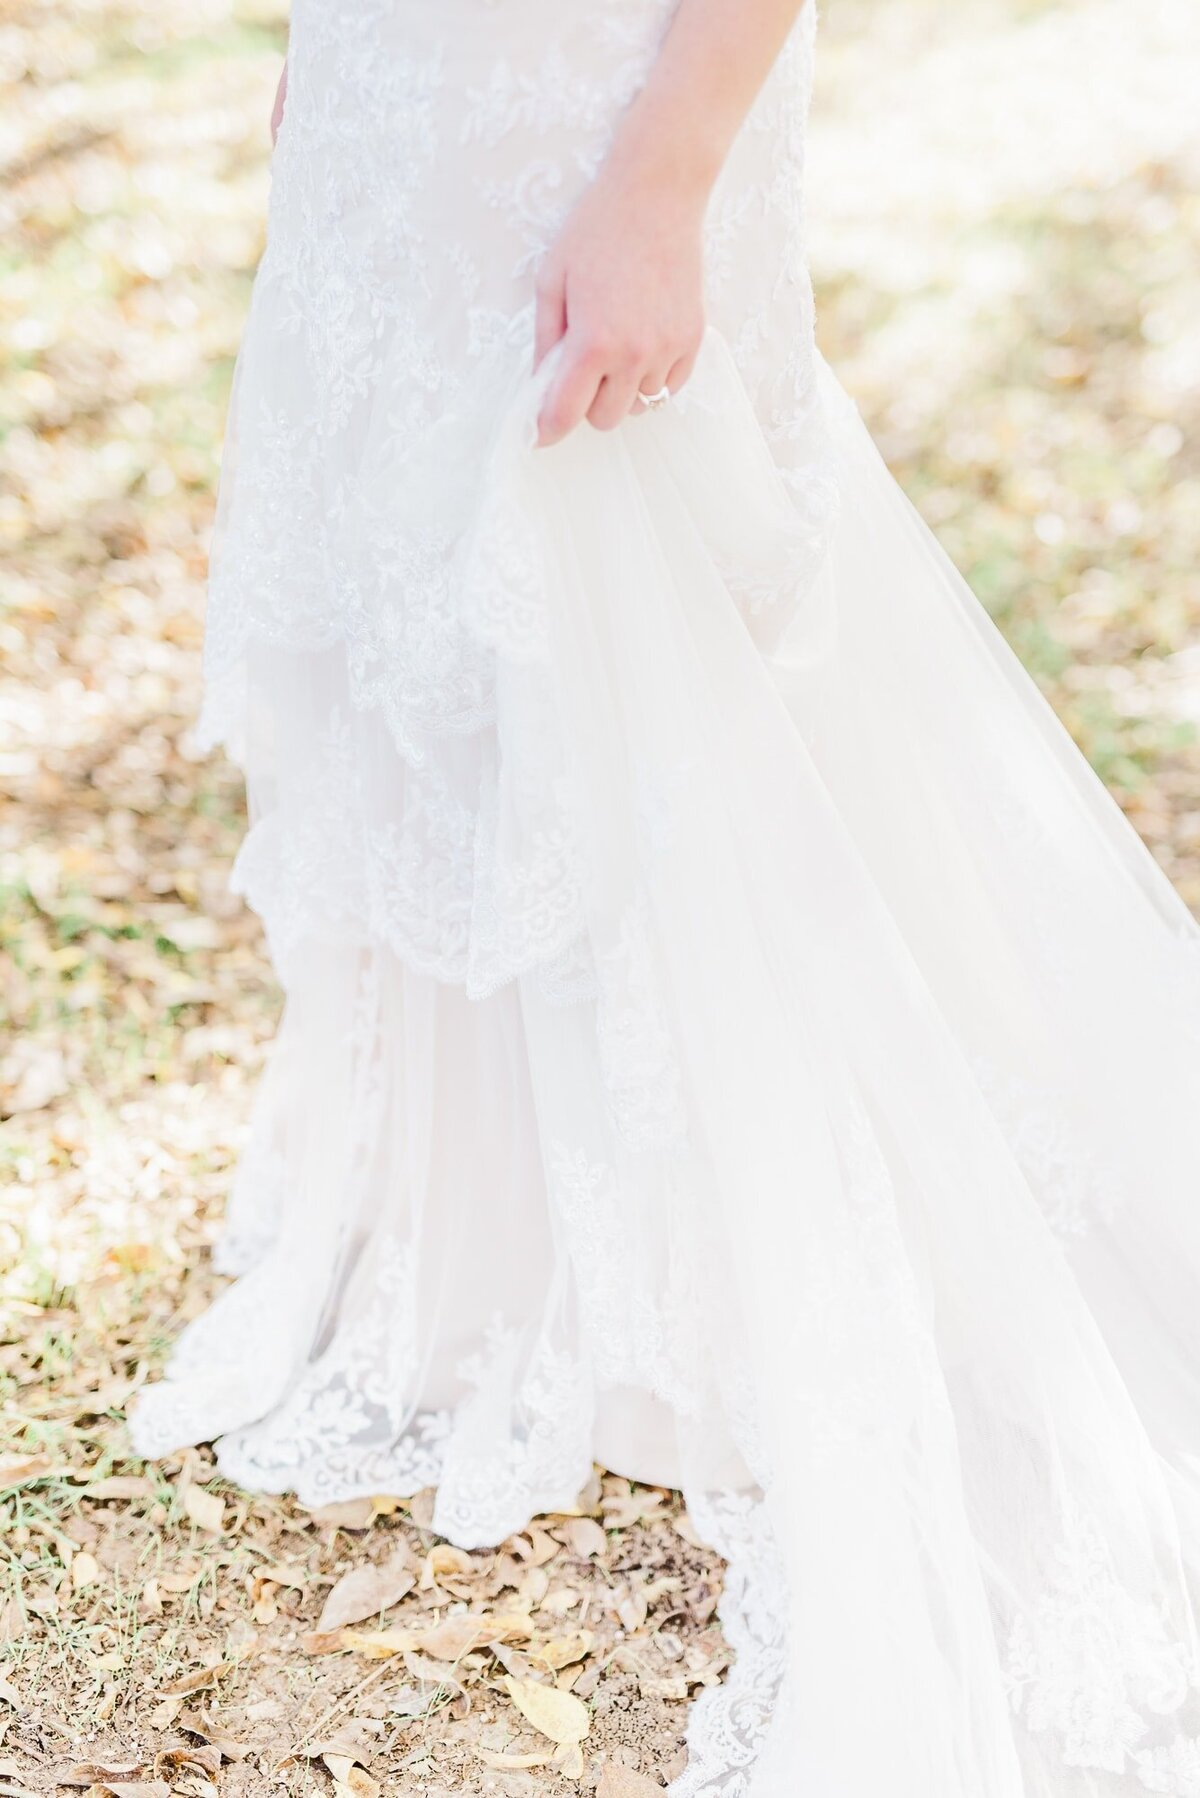 Dallas bride in wedding dress